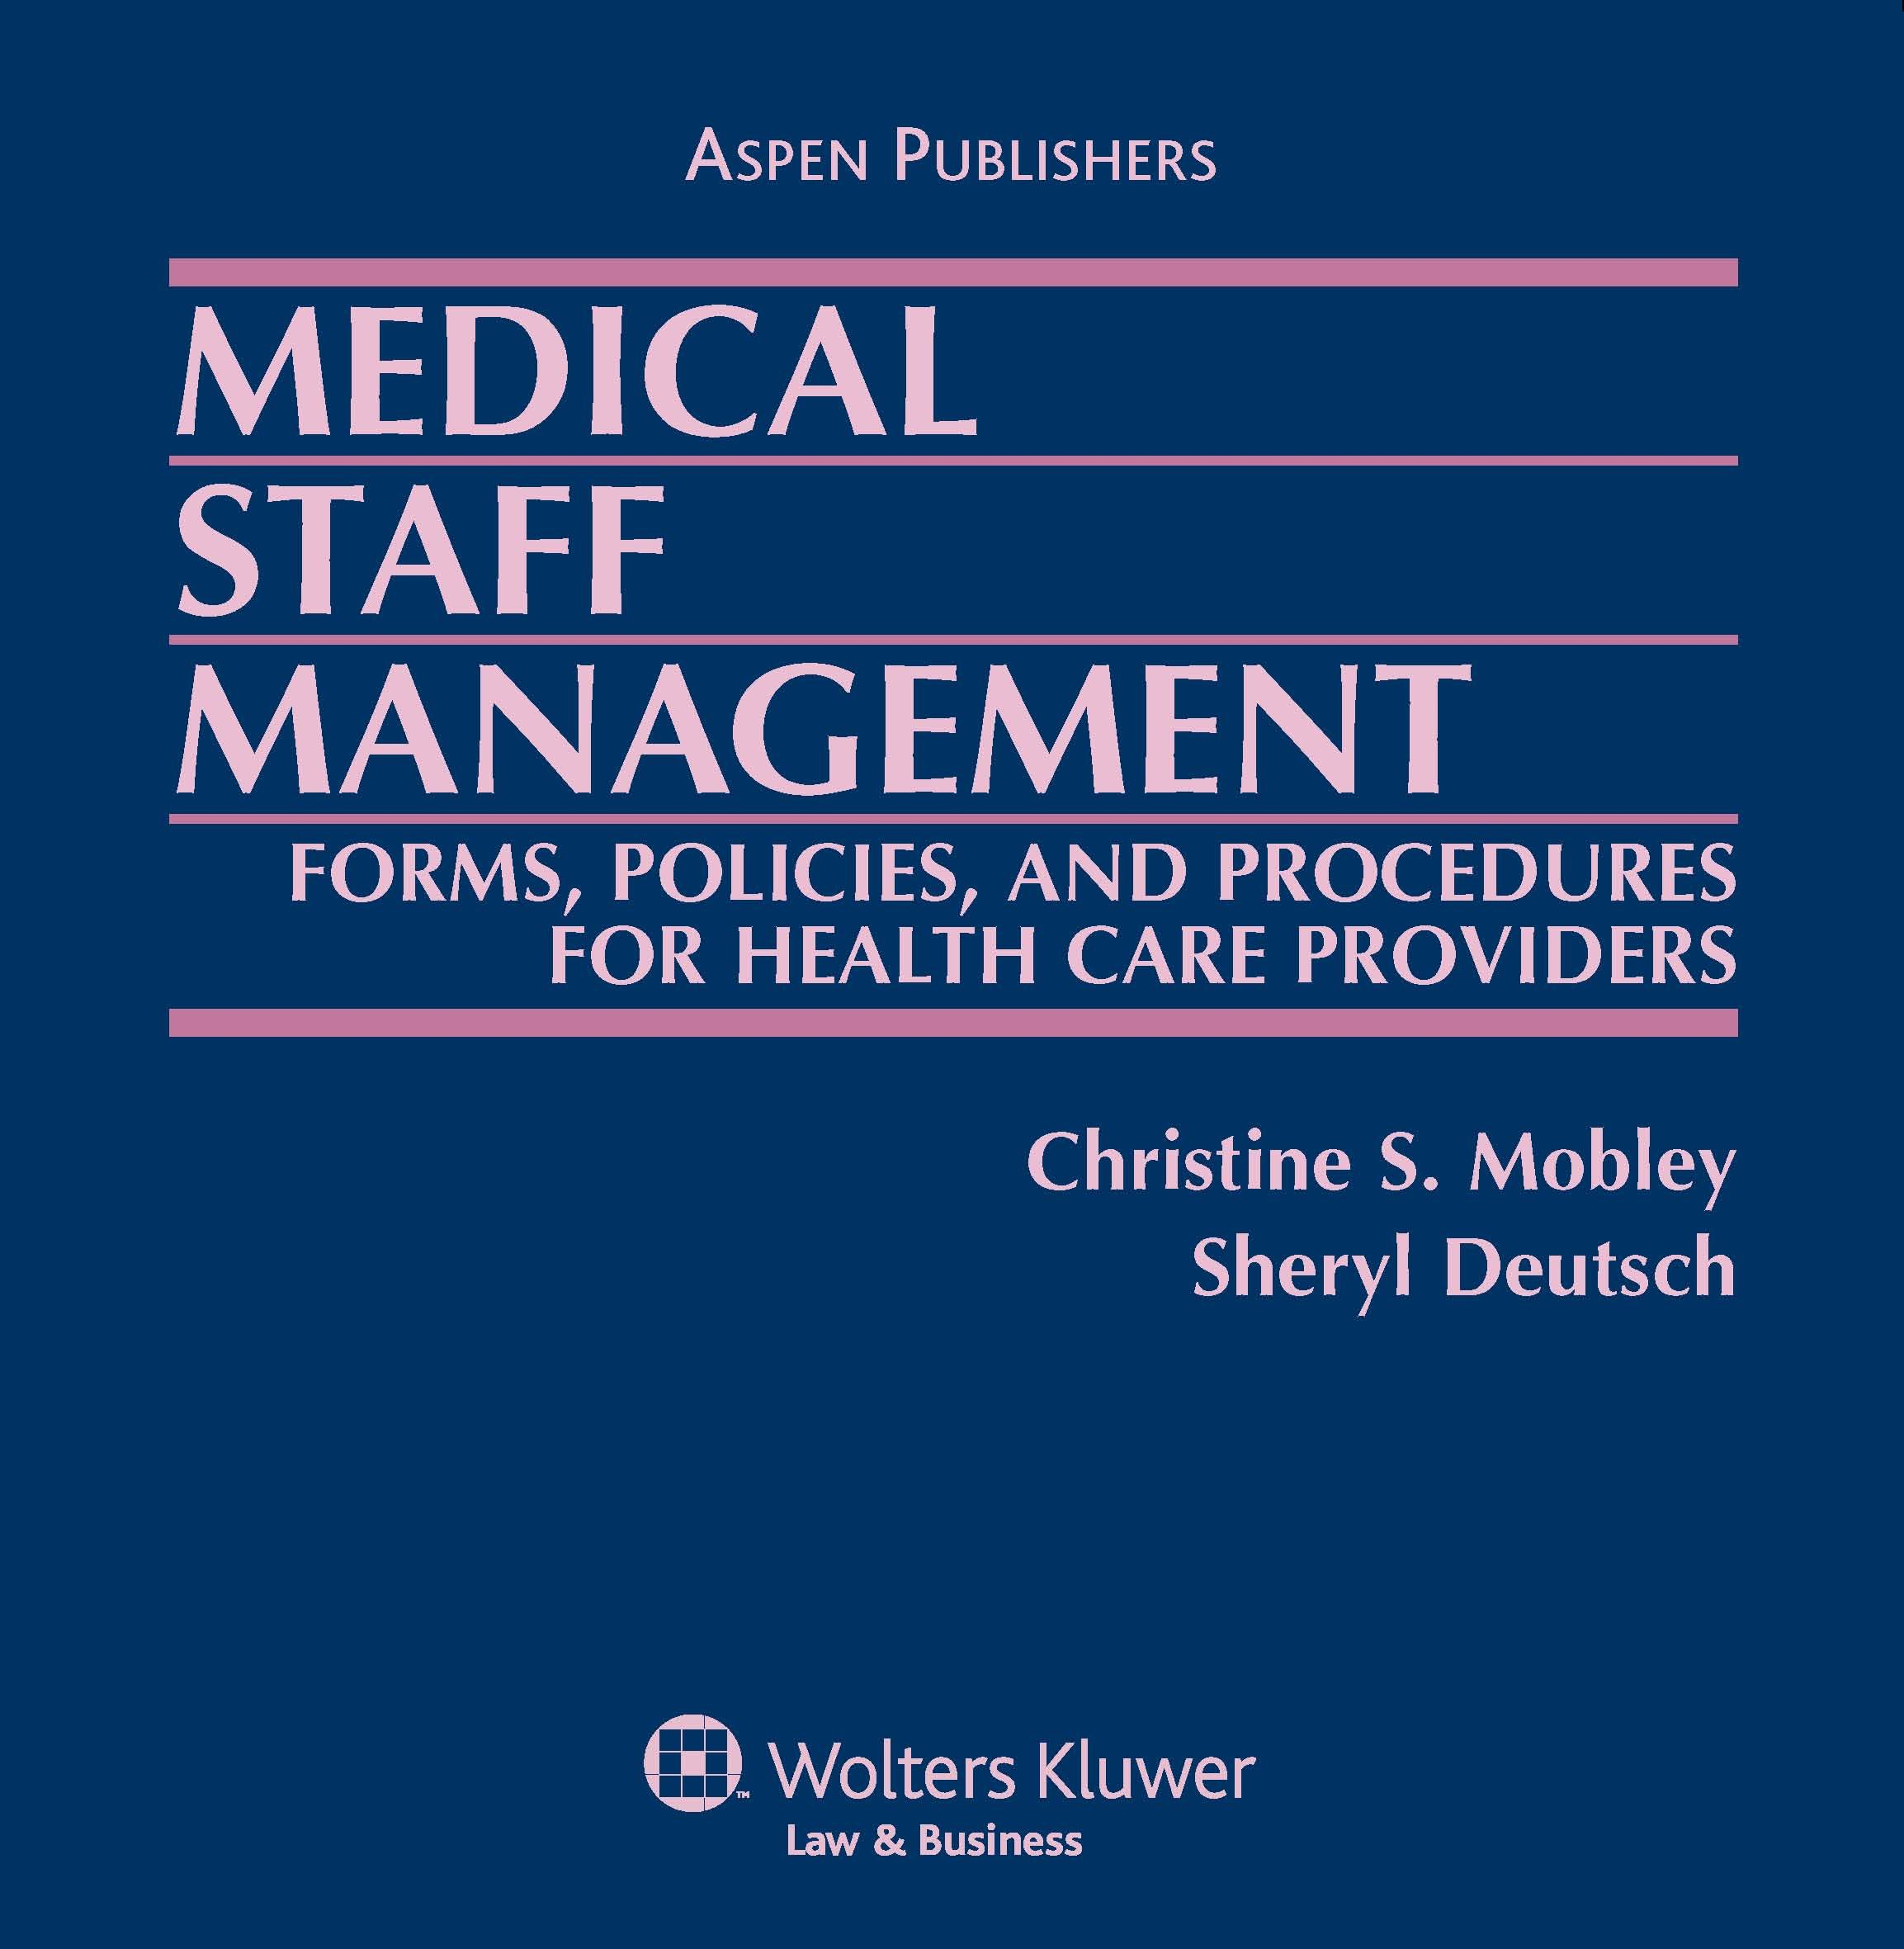 Medical Staff Management: Forms, Policies, and Procedures for Health Care Providers by Aspen Publishers